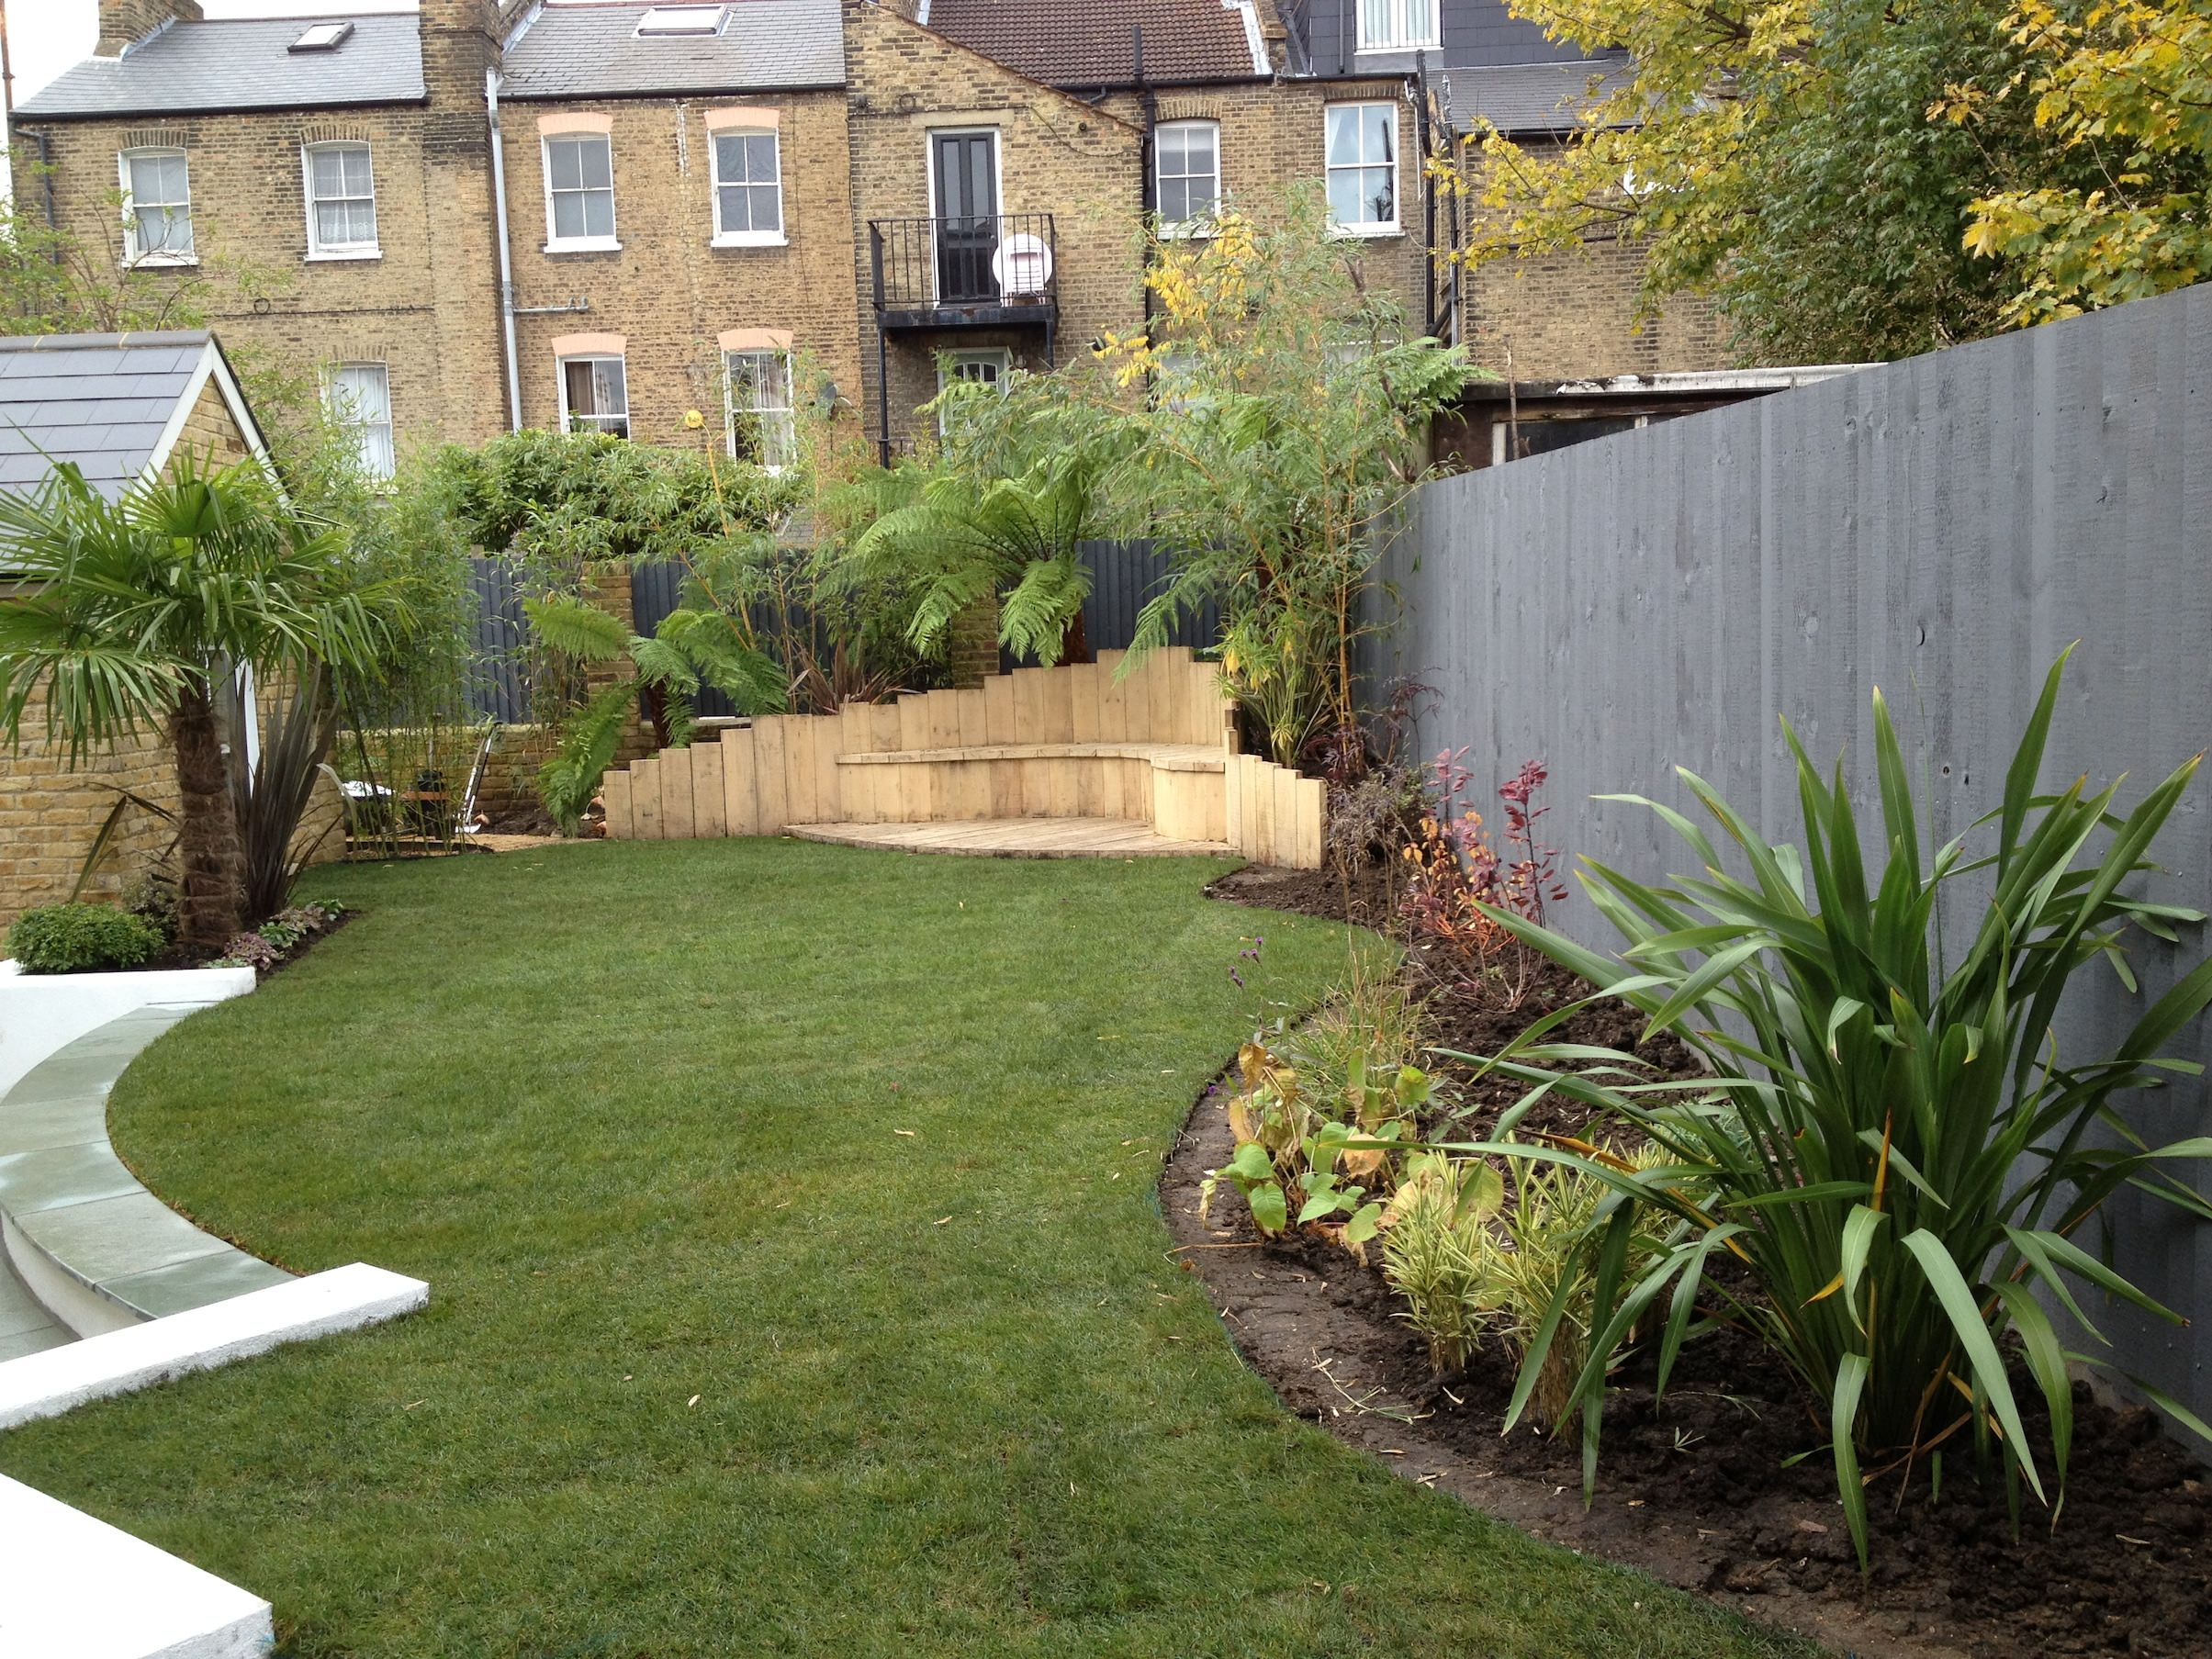 Low maintenance garden designs garden club london for Backyard designs